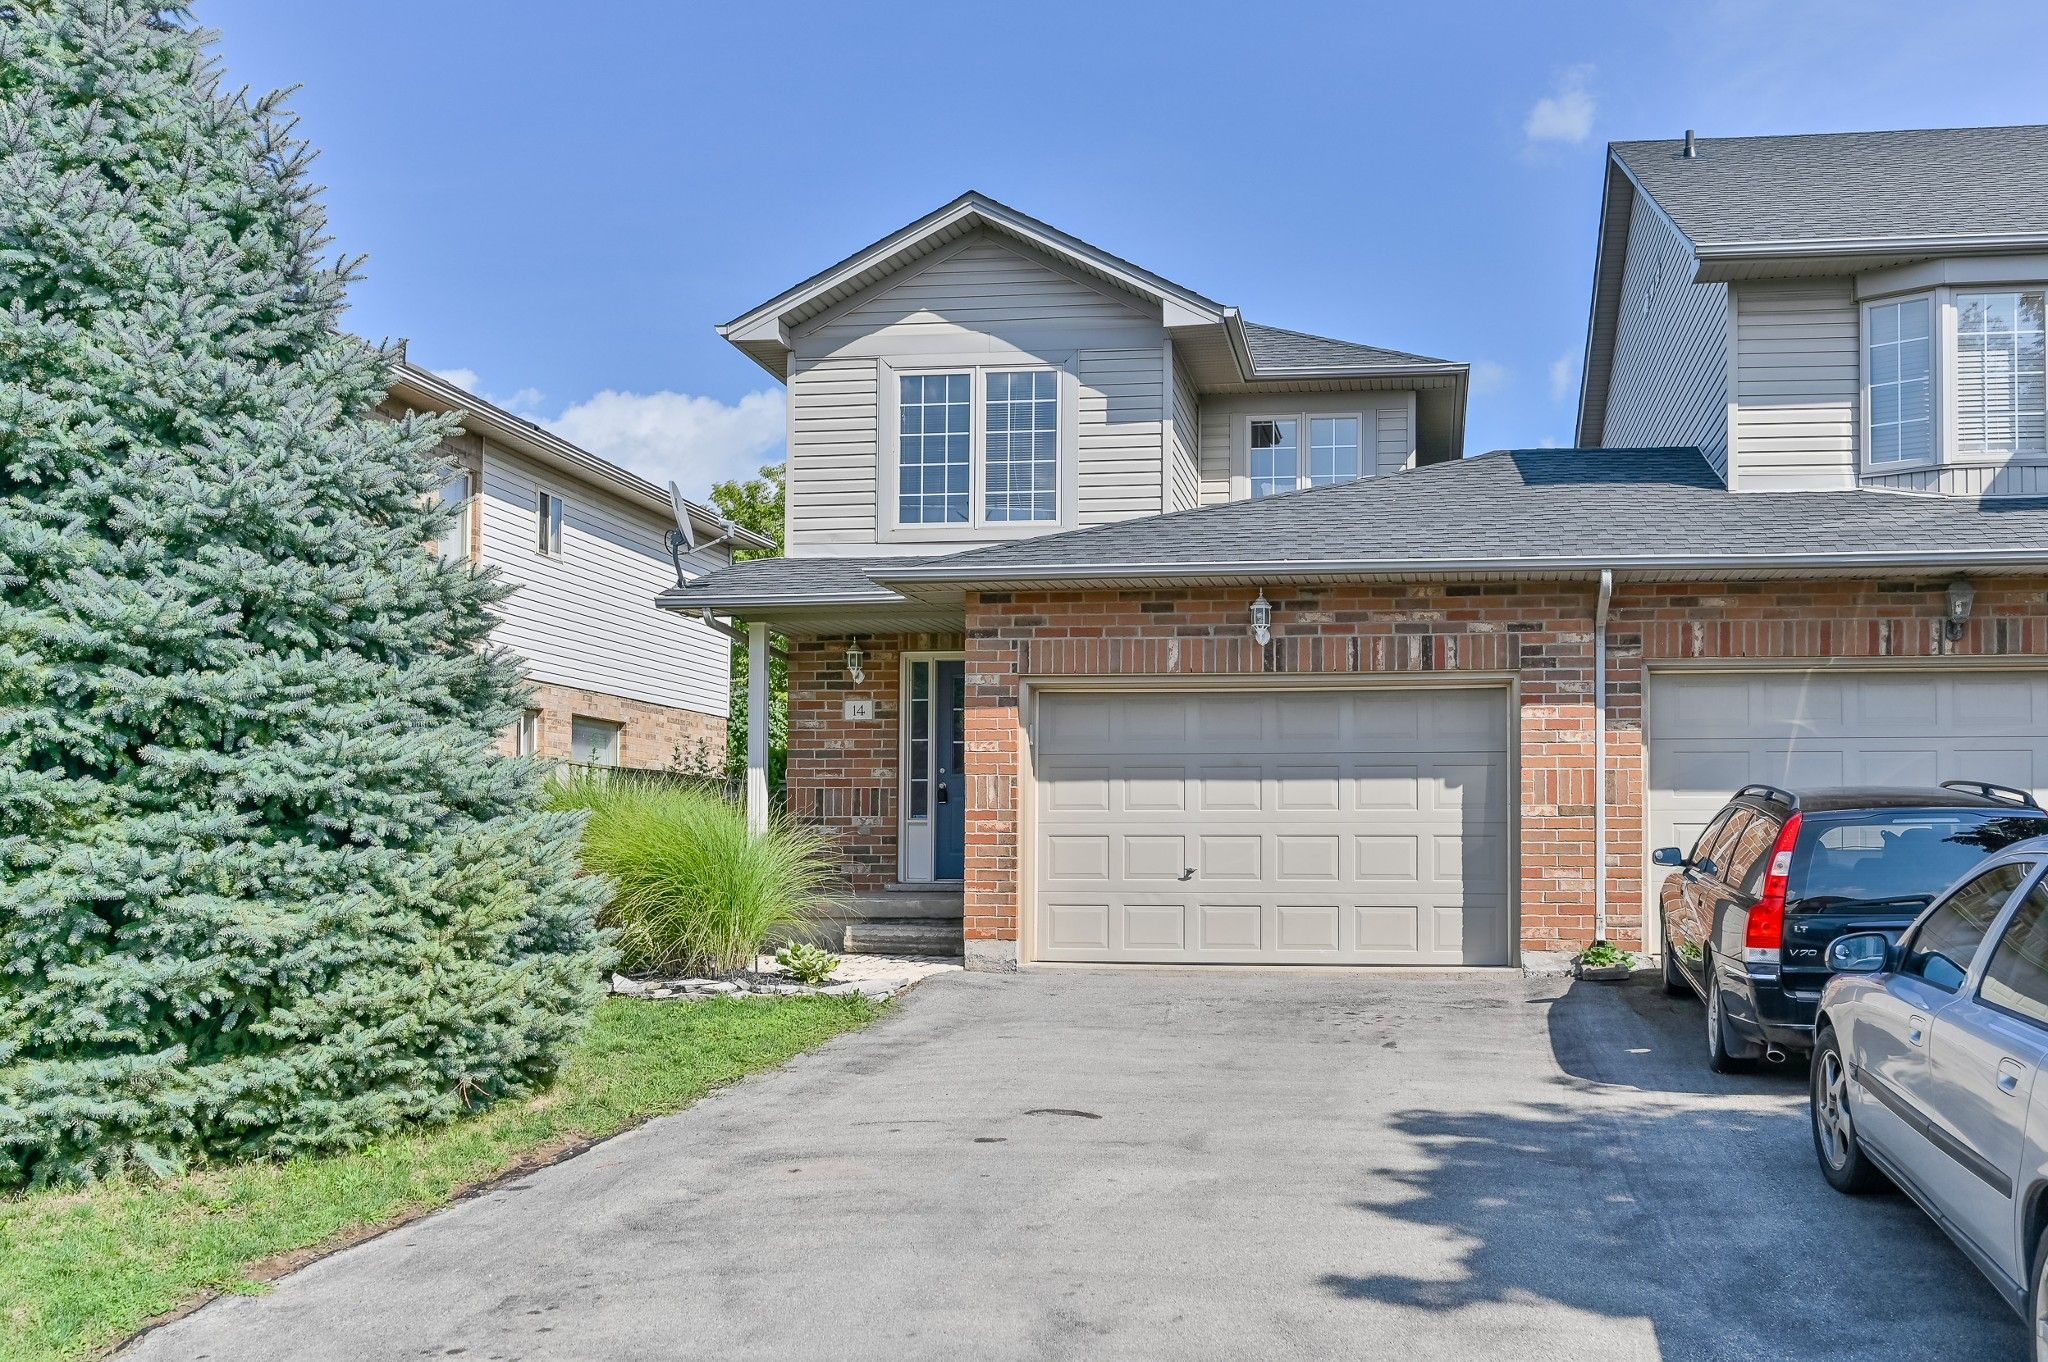 Main Photo: 14 Arrowhead Lane in Grimsby: House for sale : MLS®# H4061670